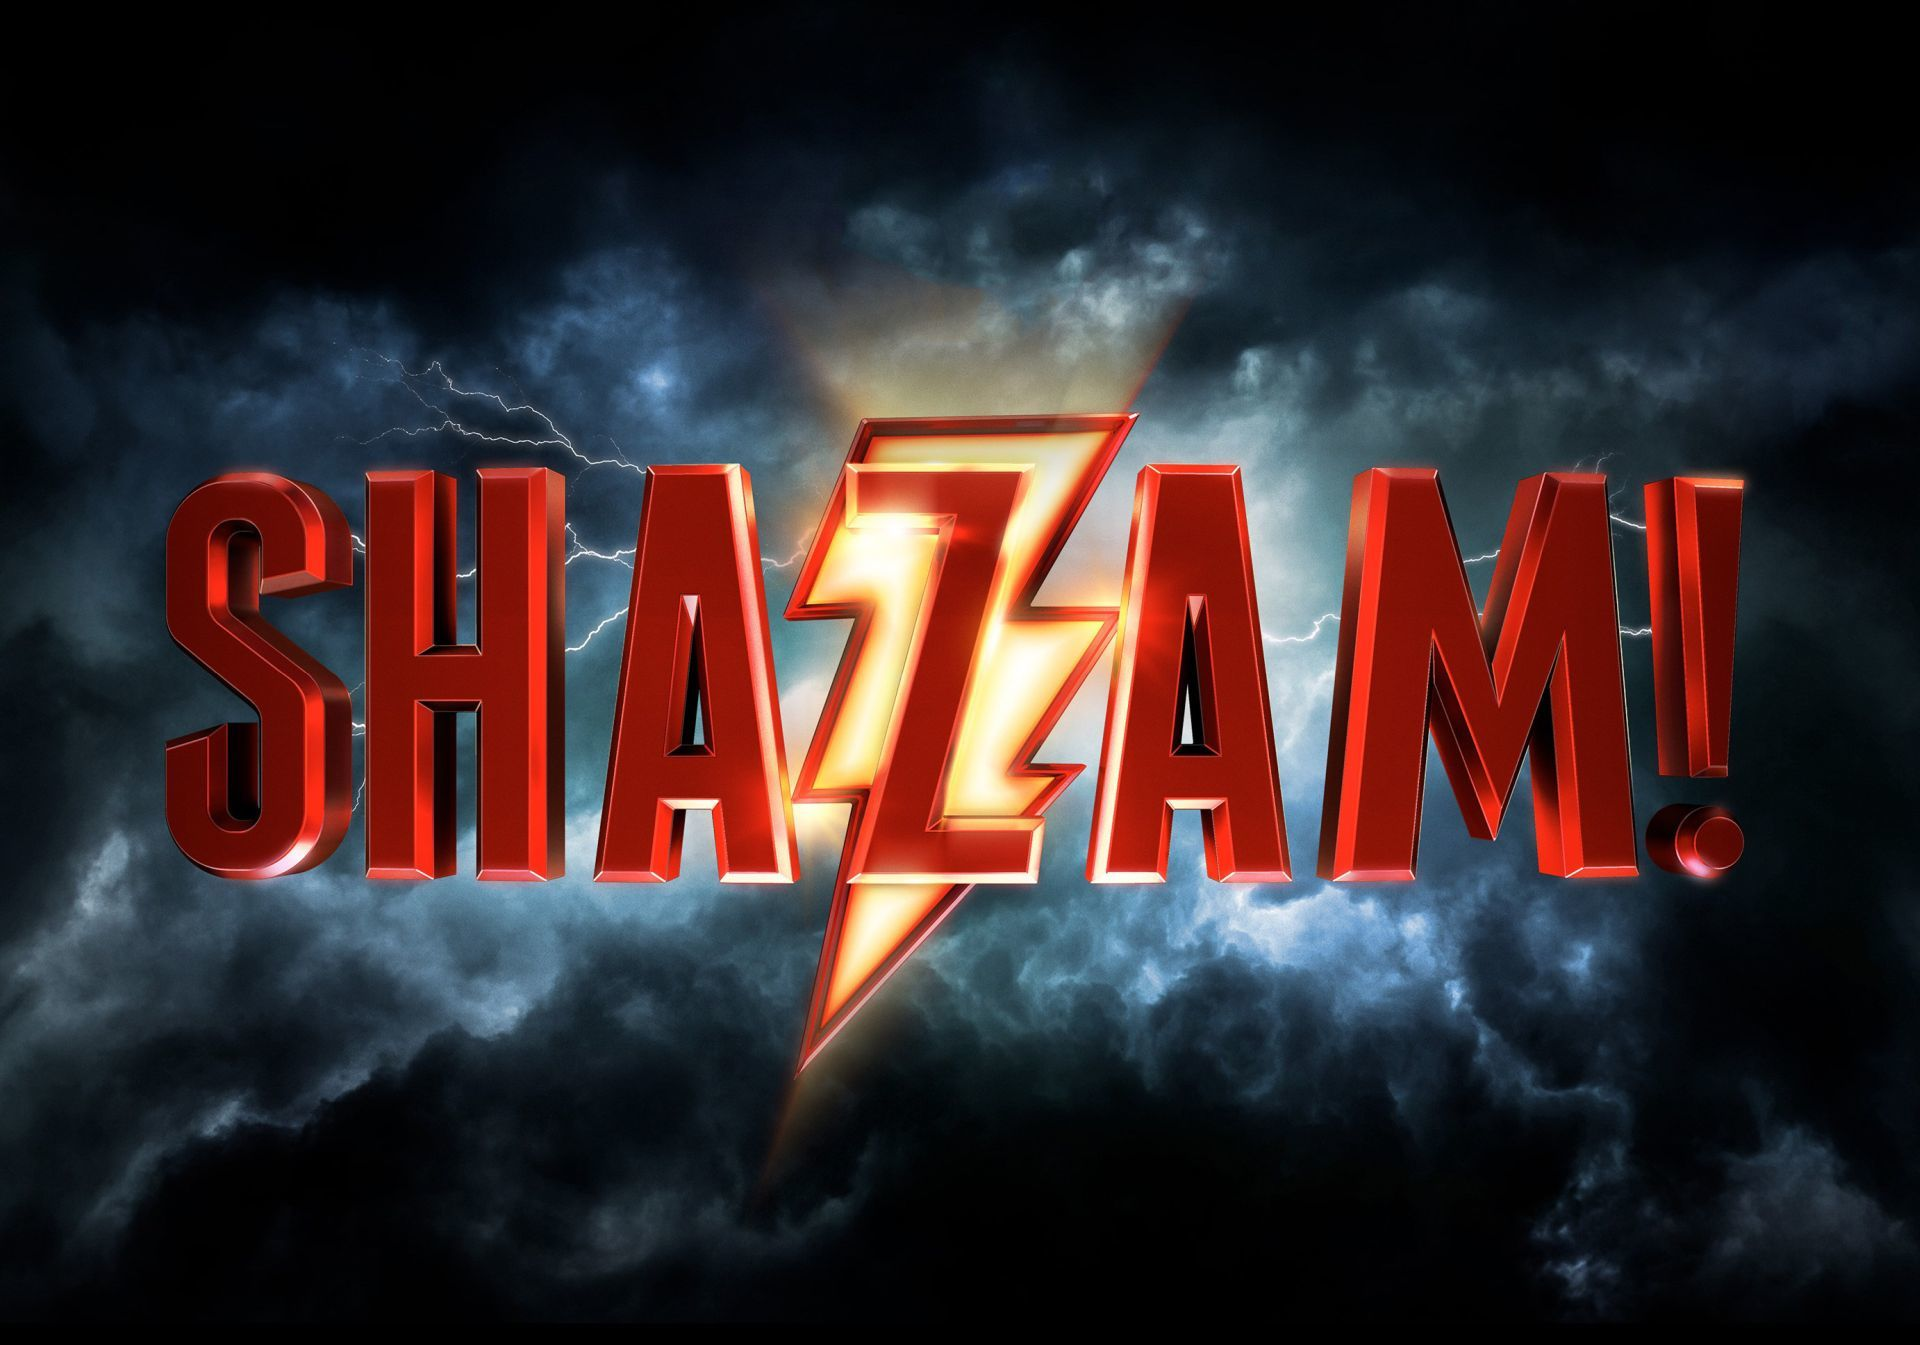 Top 13 Shazam Wallpapers in 4K and Full HD That You Must Download 1920x1345